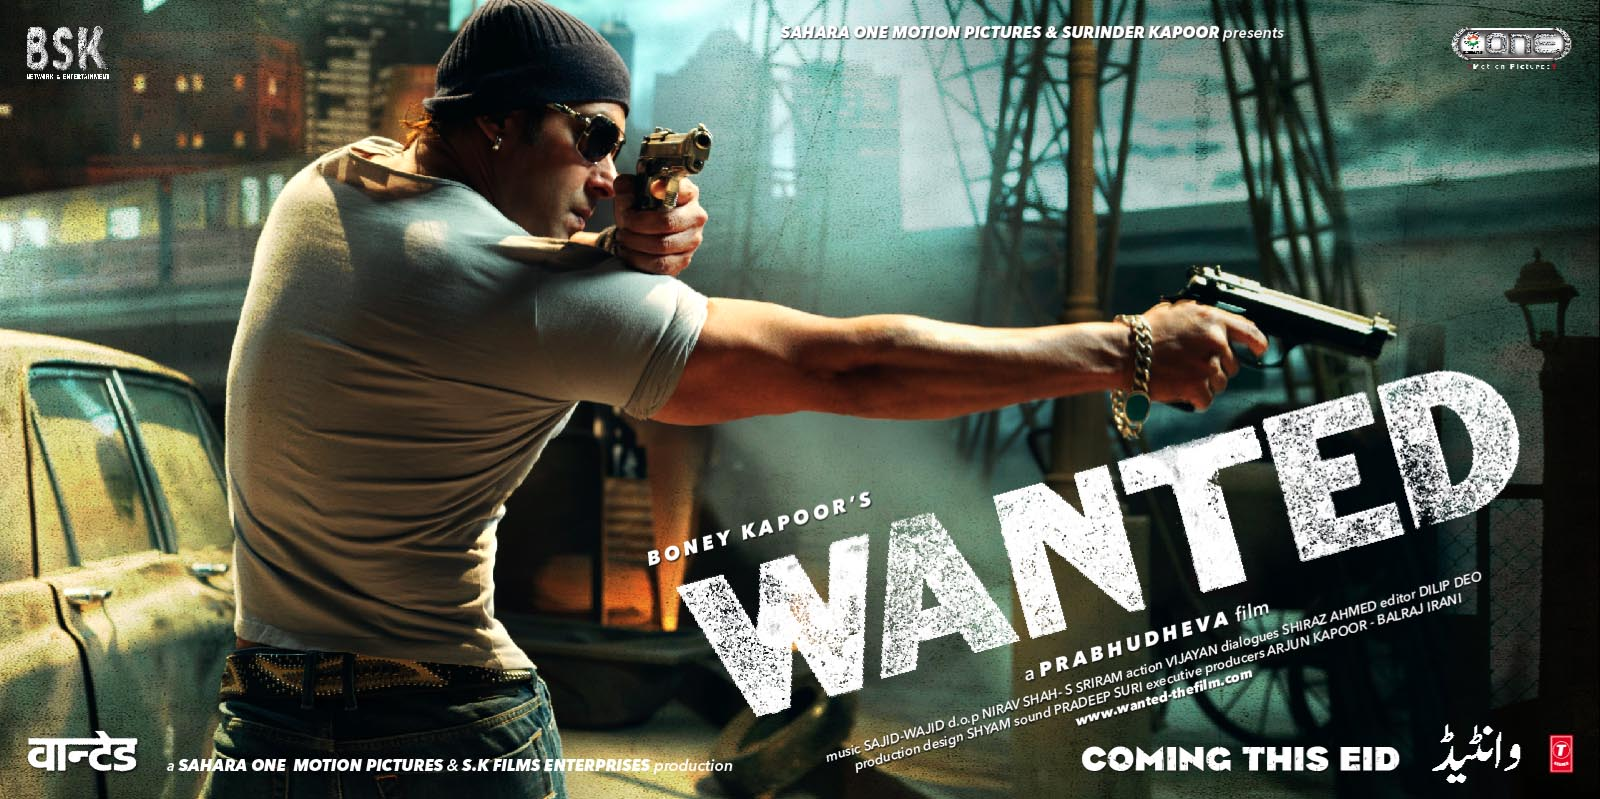 http://2.bp.blogspot.com/_RVTXL4Tq5jk/TQEraJljXHI/AAAAAAAAGXo/6tx4VHykGSk/s1600/salman-khan-in-wanted-hindi-movie.jpg